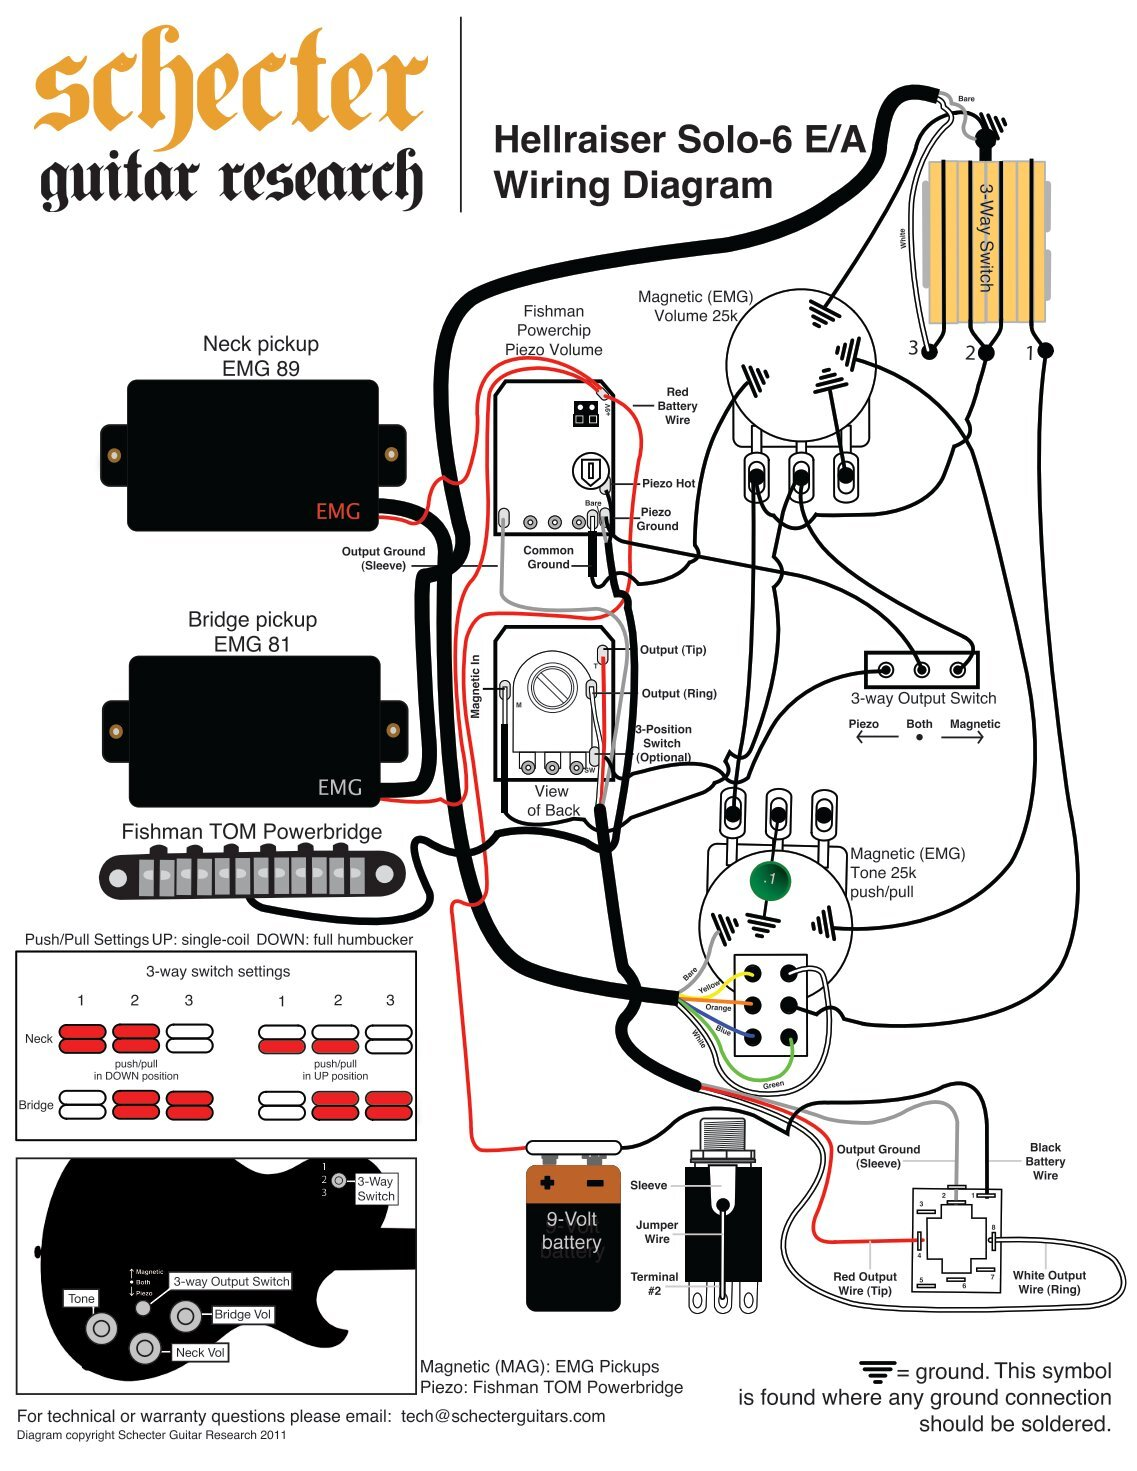 hellraiser solo 6 wiring diagram schecter guitars?resize\\\\\\\\\\\\\\\\\\\\\\\\\\\\\\\\\\\\\\\\\\\\\\\\\\\\\\\\\\\\\\\\\\\\\\\\\\\\\\\\\\\\\\\\\\\\\\\\\\\\\\\\\\\\\\\\\\\\\\\\\\\\\\\=665%2C860\\\\\\\\\\\\\\\\\\\\\\\\\\\\\\\\\\\\\\\\\\\\\\\\\\\\\\\\\\\\\\\\\\\\\\\\\\\\\\\\\\\\\\\\\\\\\\\\\\\\\\\\\\\\\\\\\\\\\\\\\\\\\\\&ssl\\\\\\\\\\\\\\\\\\\\\\\\\\\\\\\\\\\\\\\\\\\\\\\\\\\\\\\\\\\\\\\\\\\\\\\\\\\\\\\\\\\\\\\\\\\\\\\\\\\\\\\\\\\\\\\\\\\\\\\\\\\\\\\=1 outstanding zakk wylde emg wiring diagram pictures wiring emg wiring schematics at mr168.co